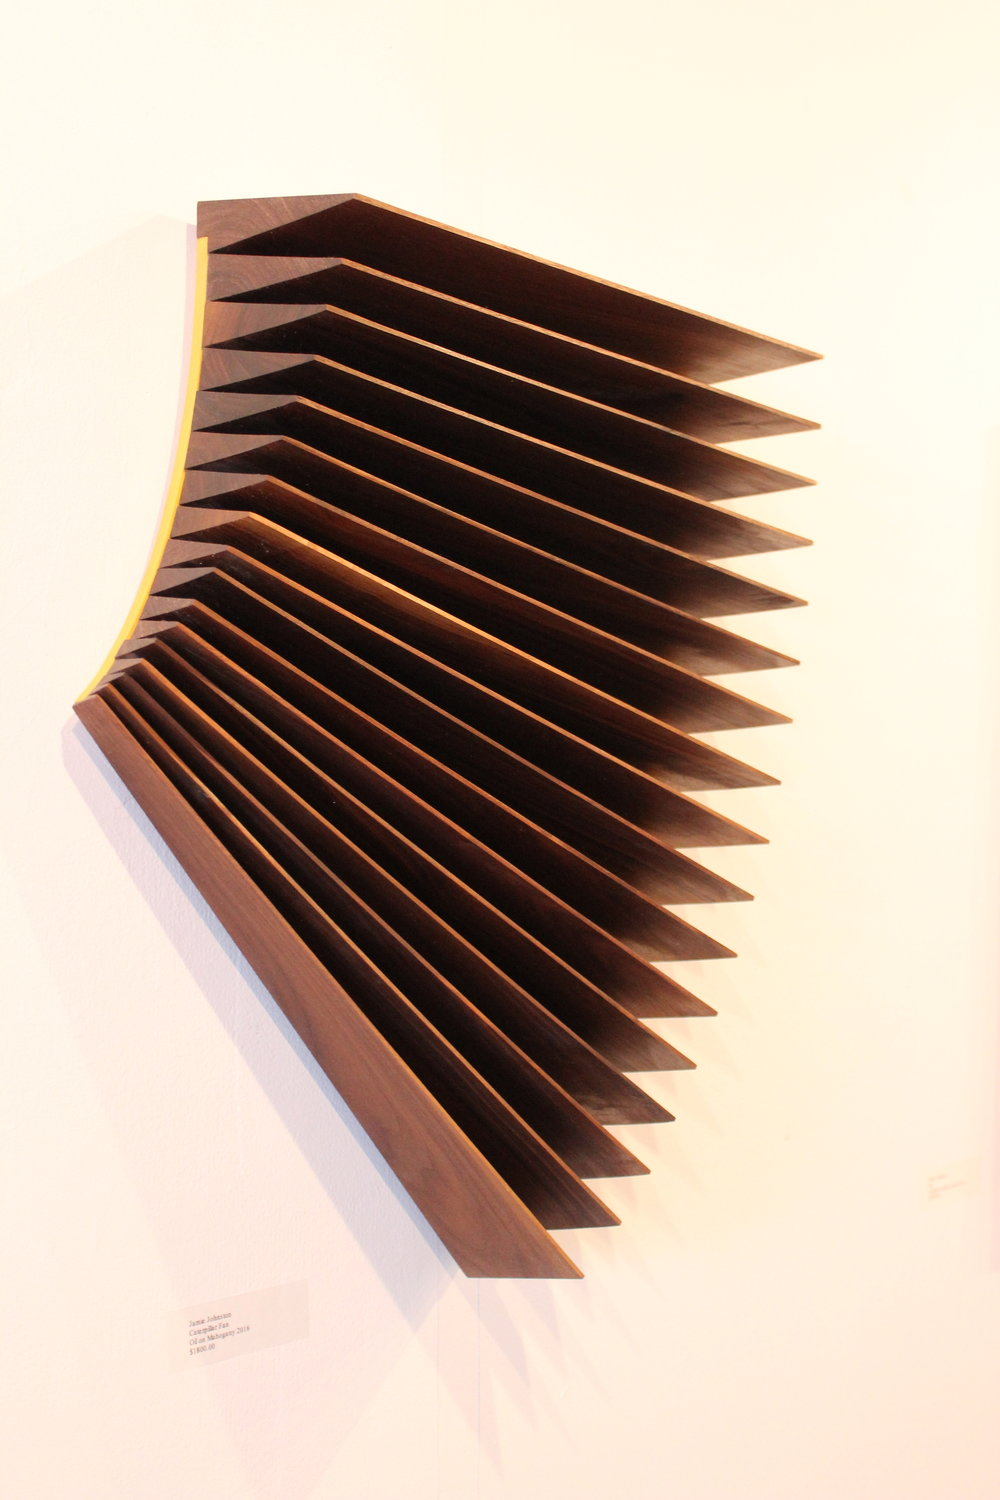 Jamie Johnston | Caterpillar Fan | Oil on Mahogany | 20x26"